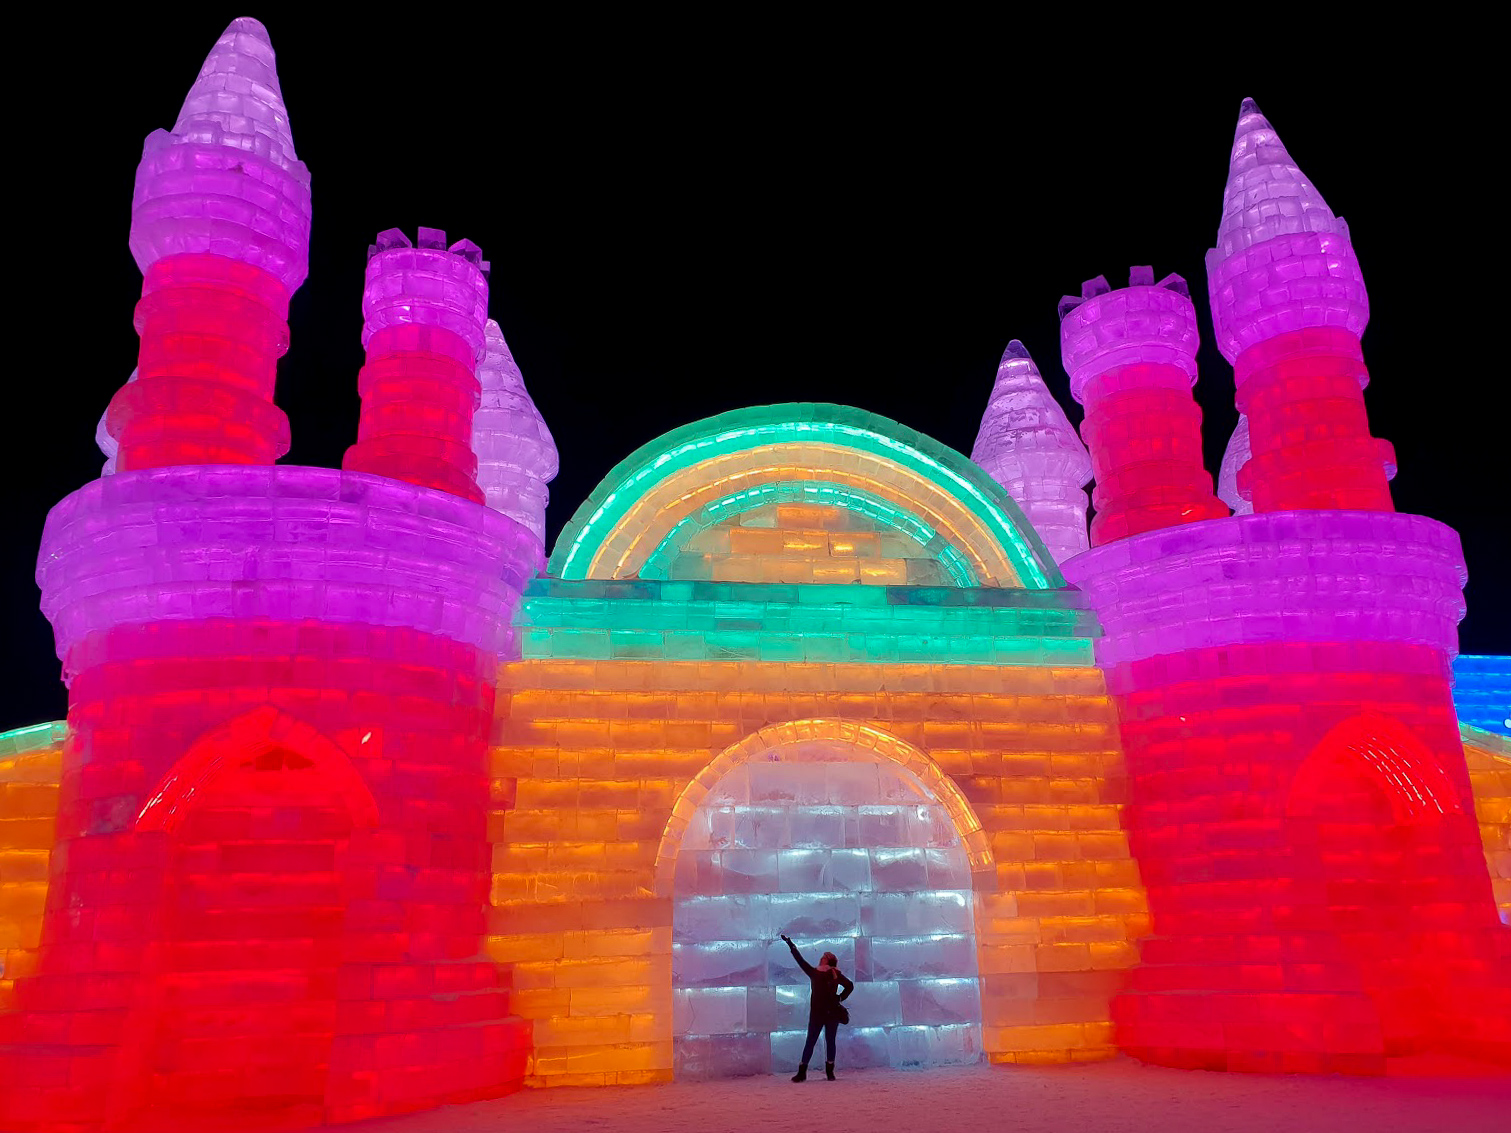 Rosie standing in front of a multicoloured ice castle building at Harbin Ice and Snow World